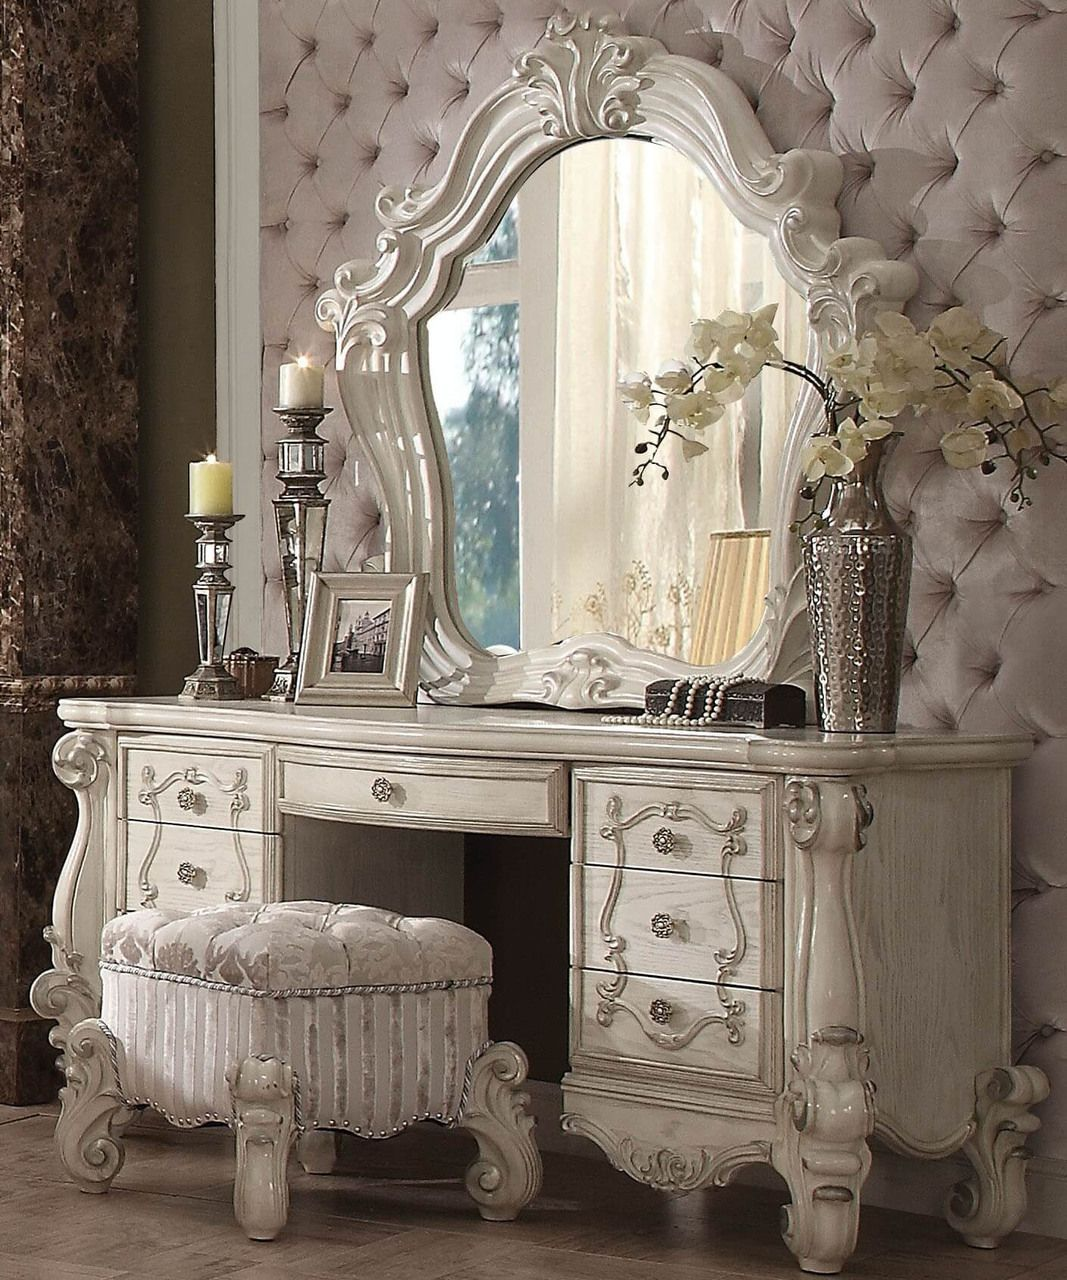 Vanity Tables Makeup Vanity Tables Vanities, Vanity